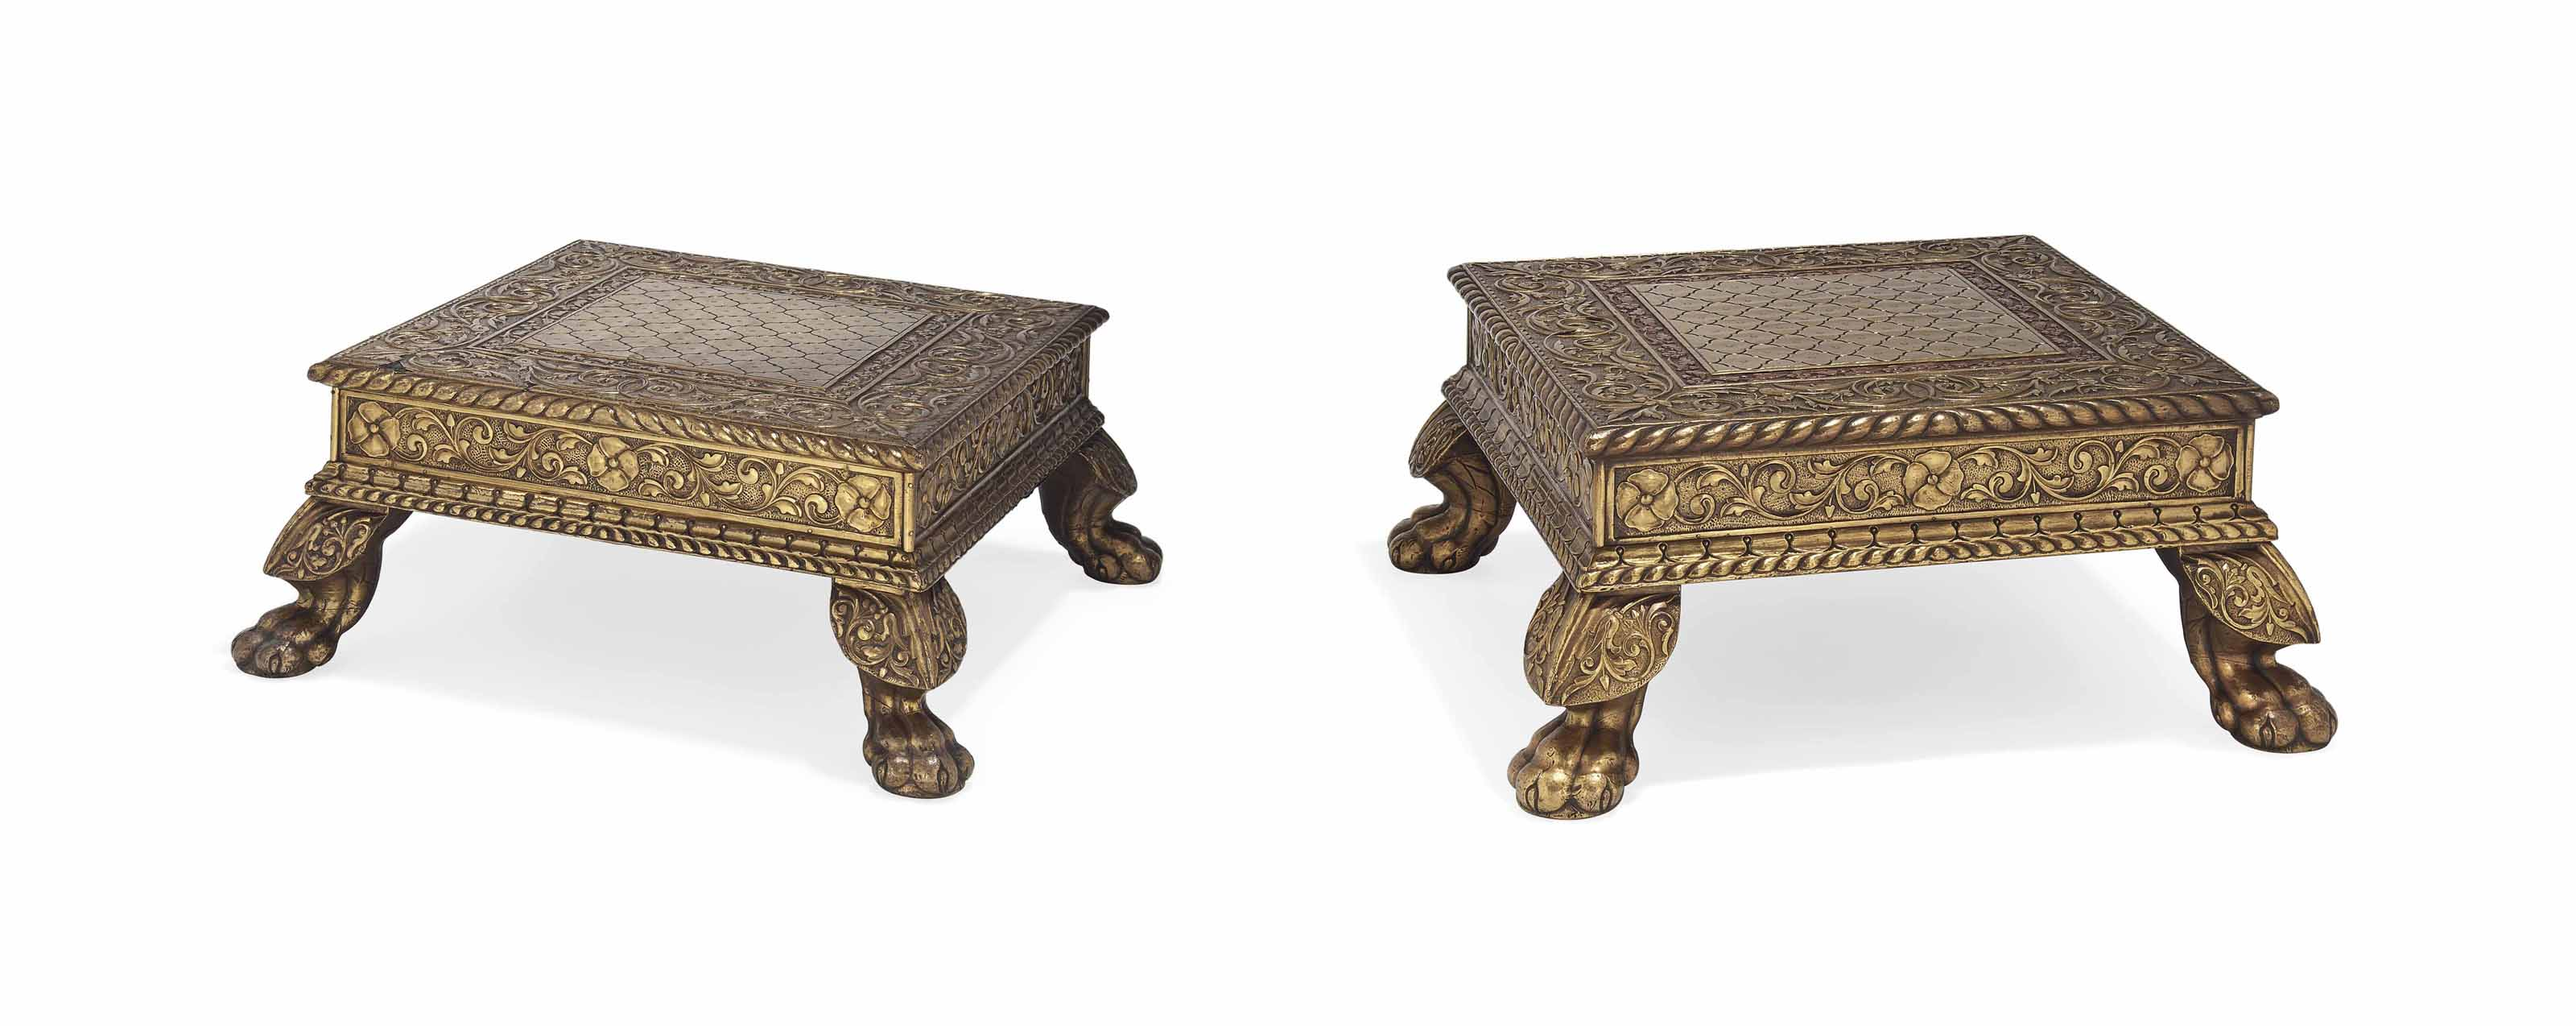 A NEAR PAIR OF FOOT STOOLS